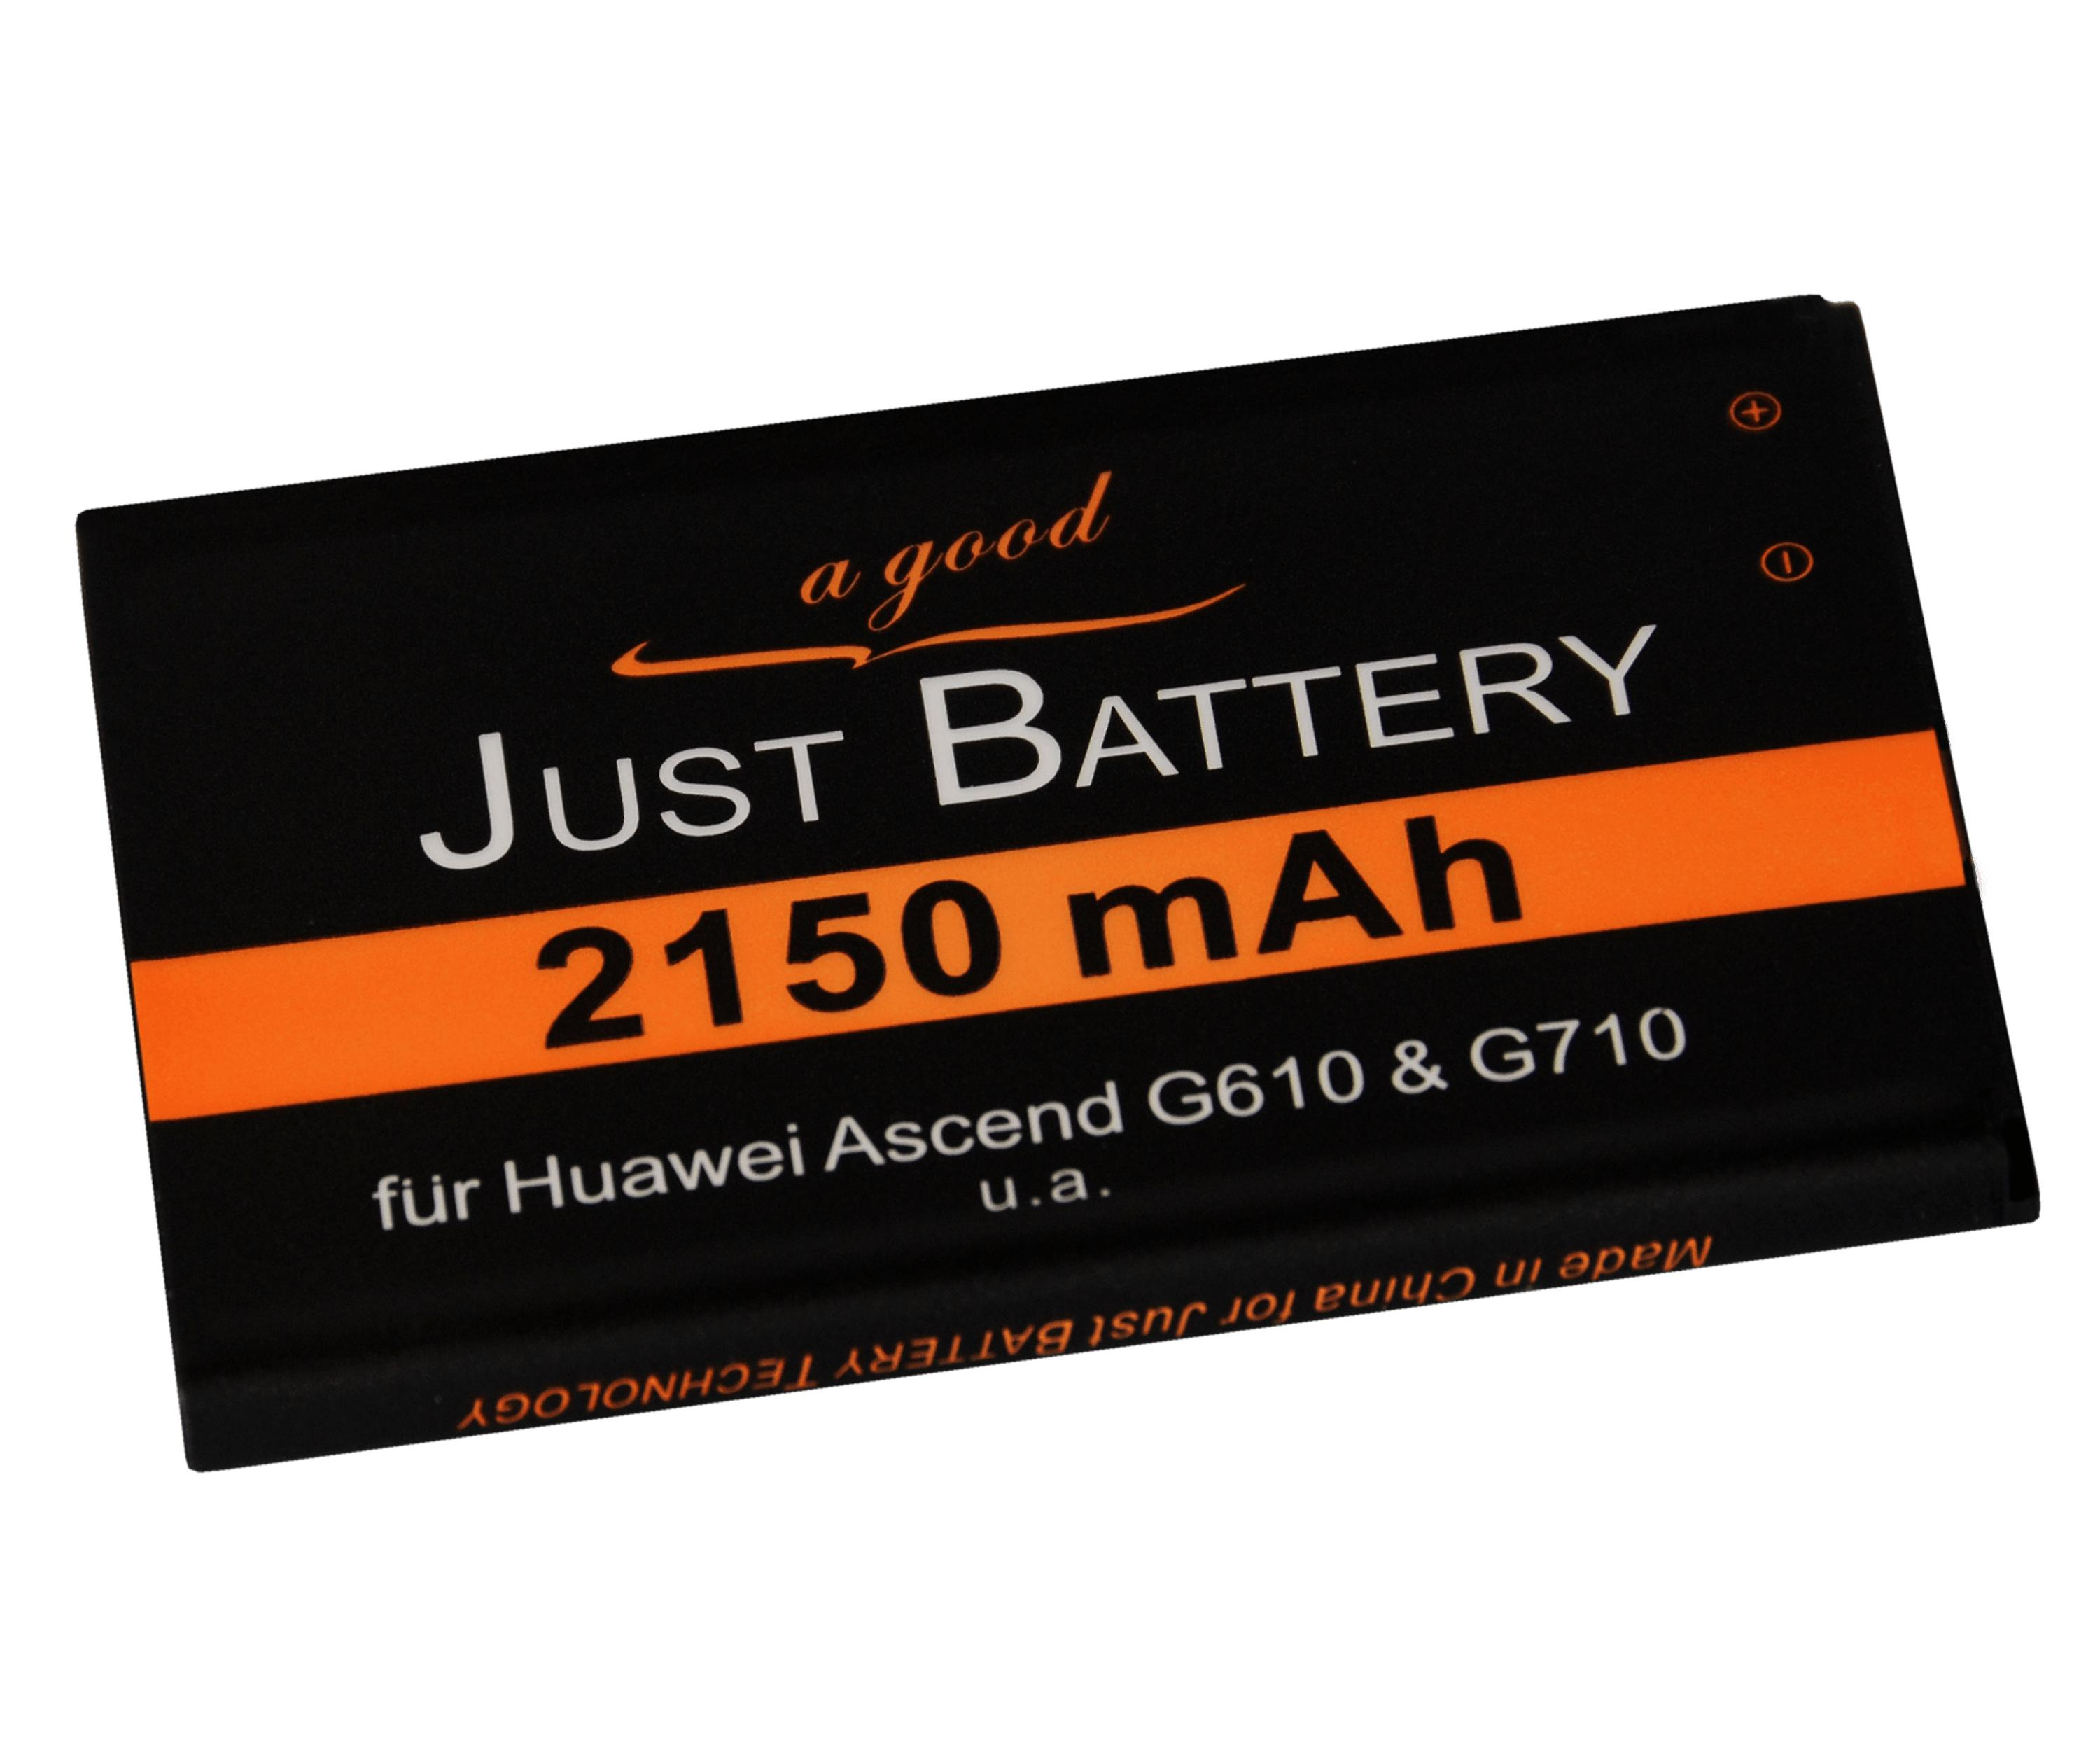 Battery for Huawei Ascend G610 & G710 and others